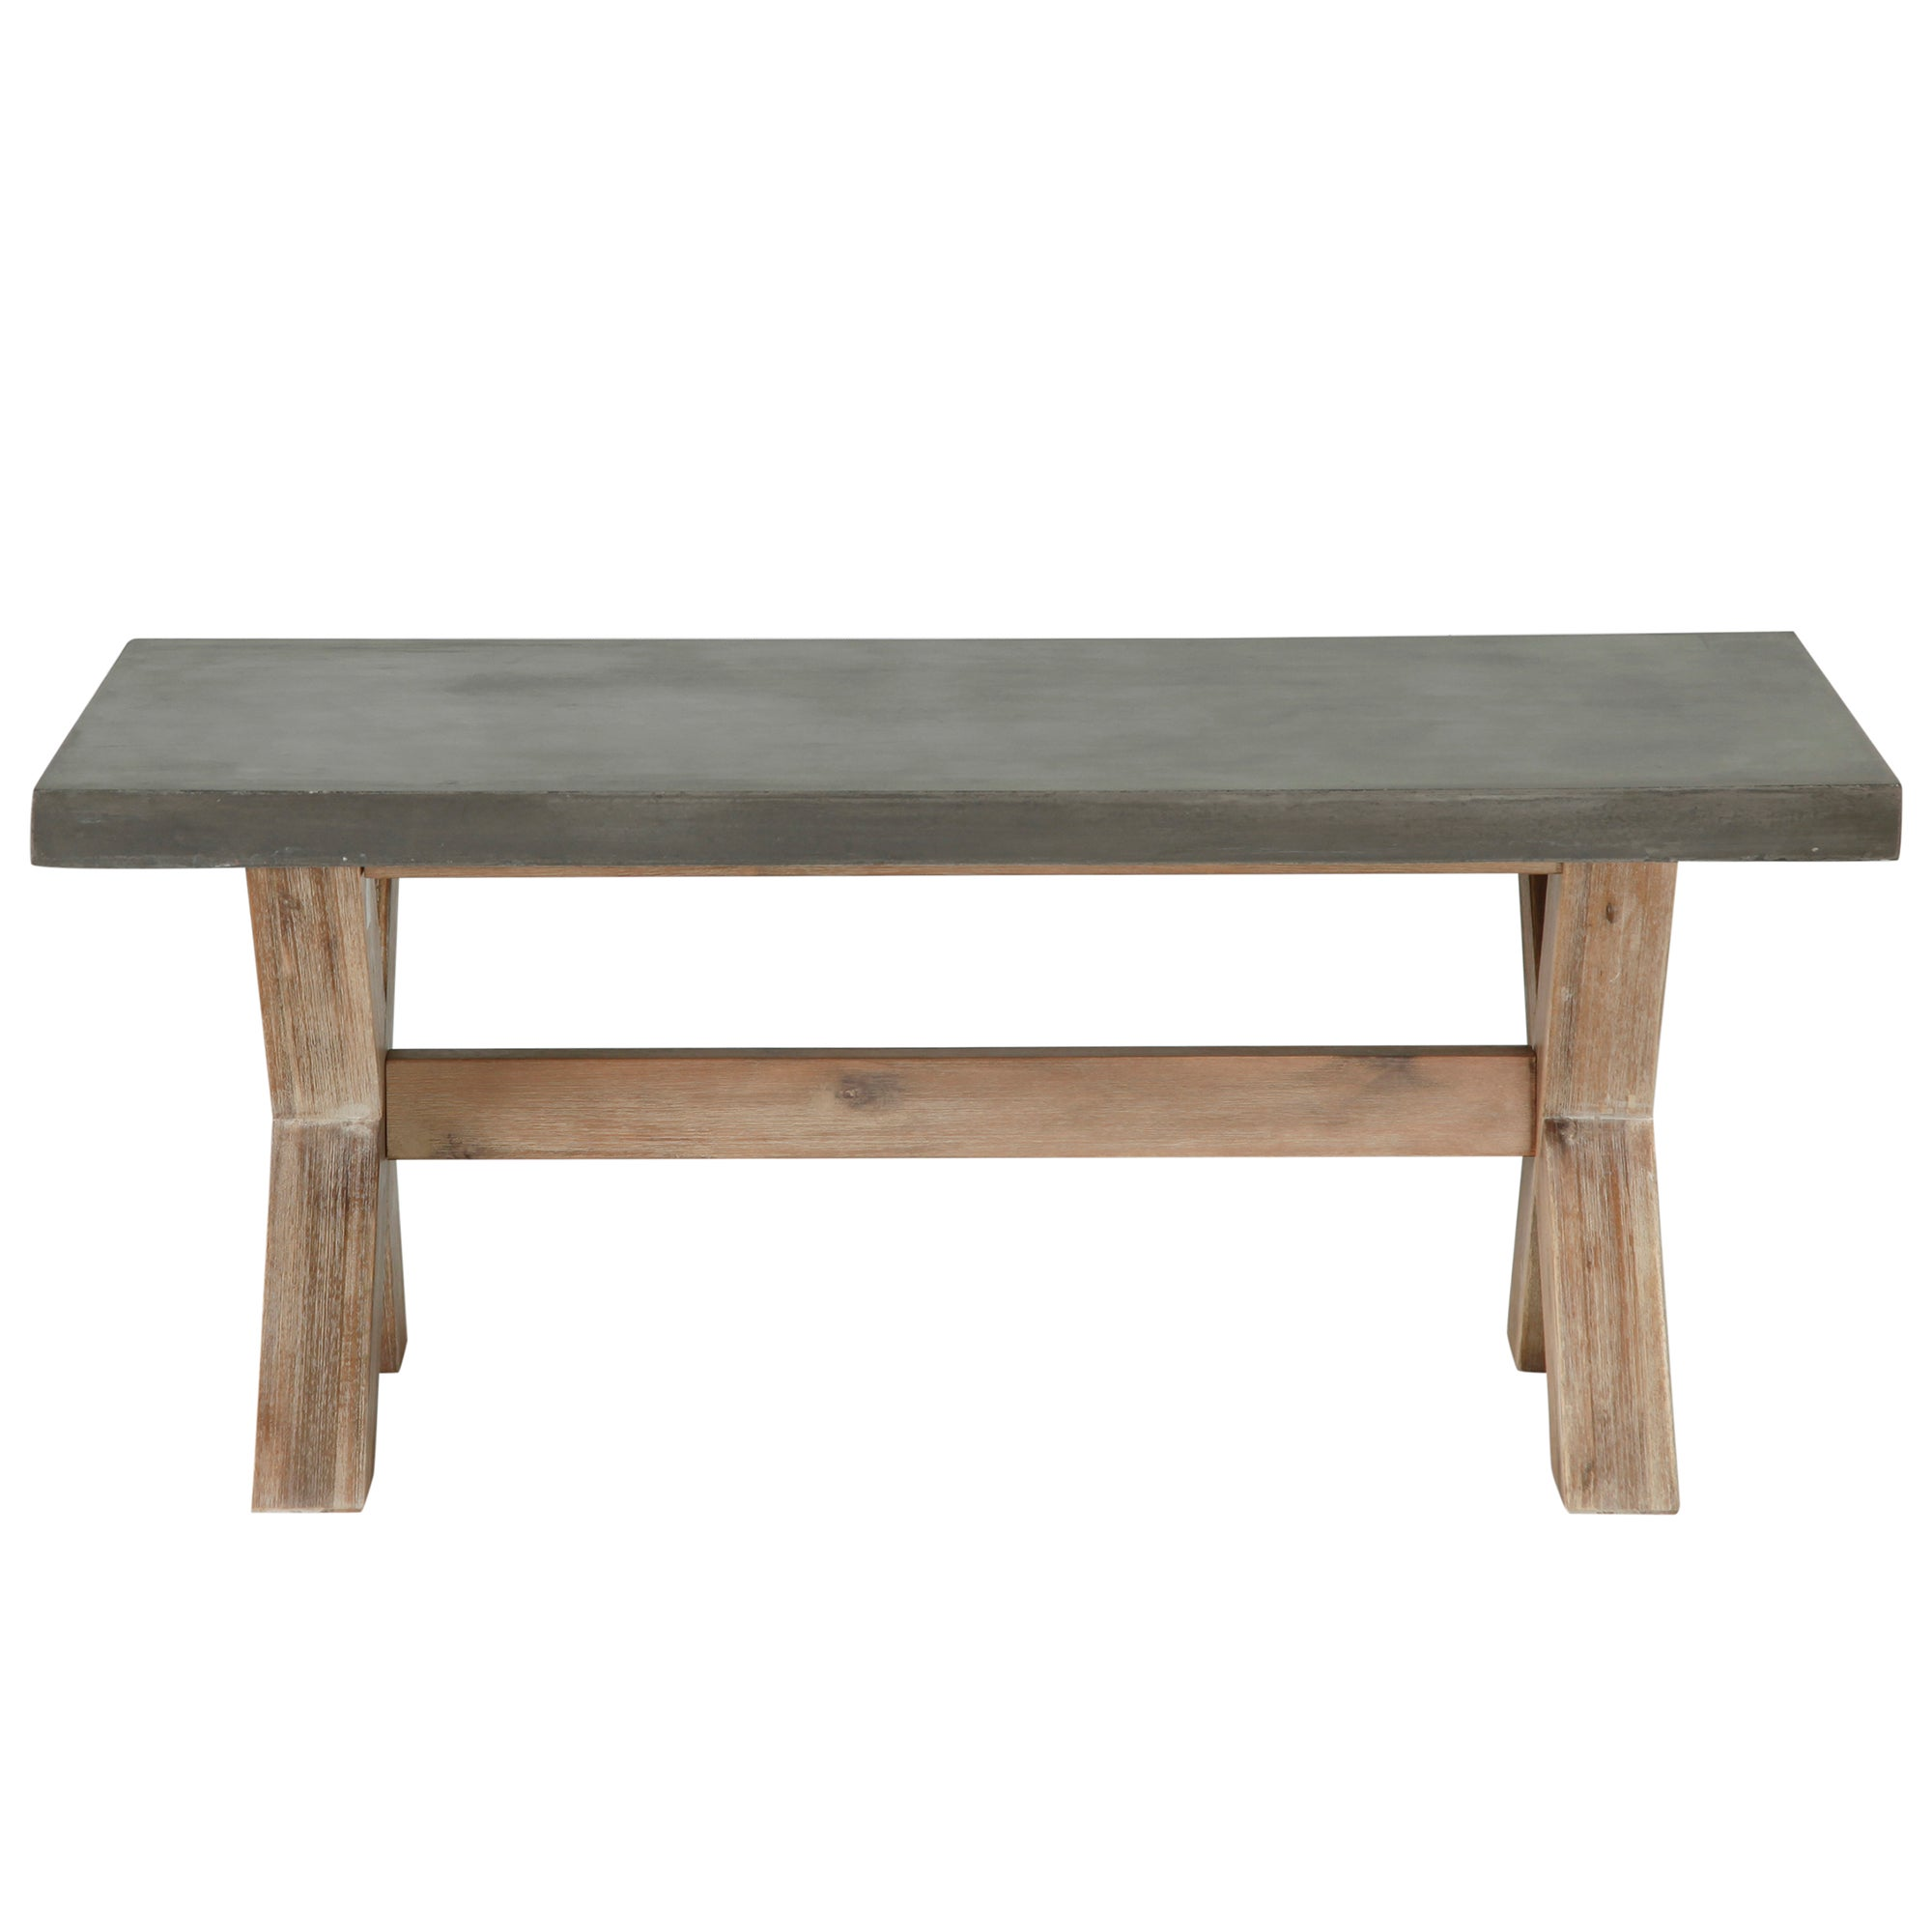 Buy Cheap Grey Coffee Table Compare Tables Prices For Best Uk Deals